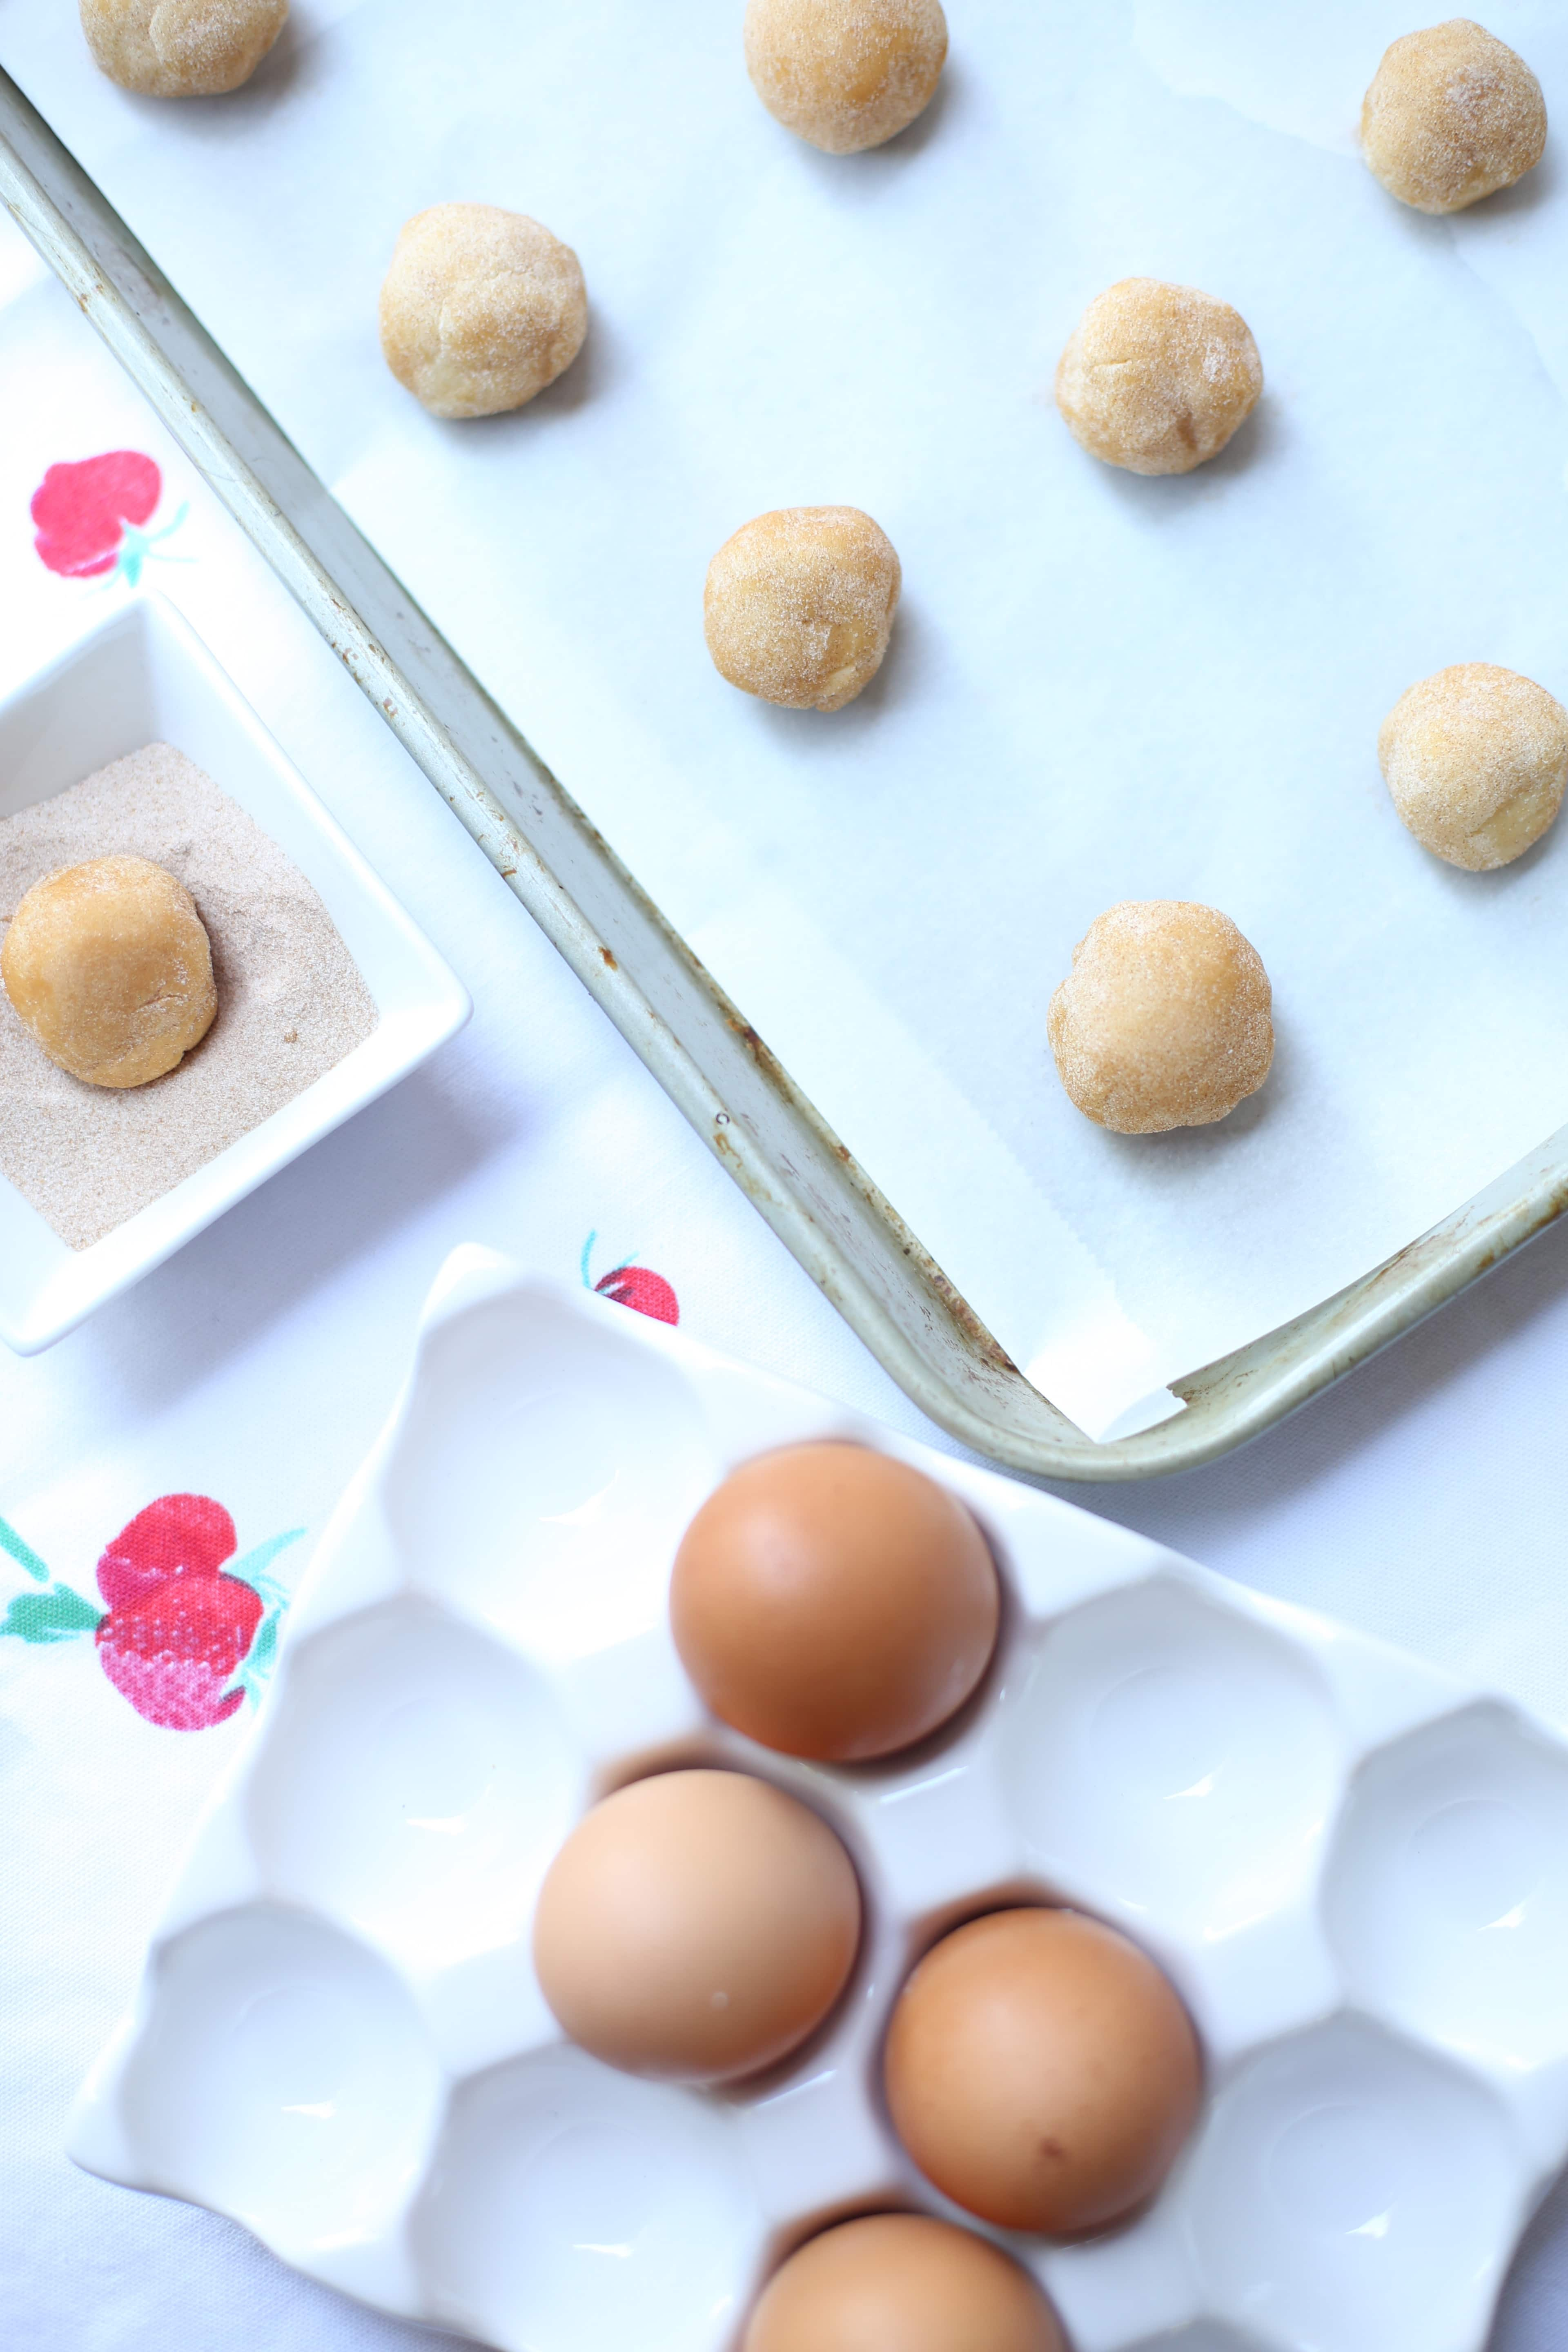 unbaked cookies on a tray and some fresh eggs in a white crate